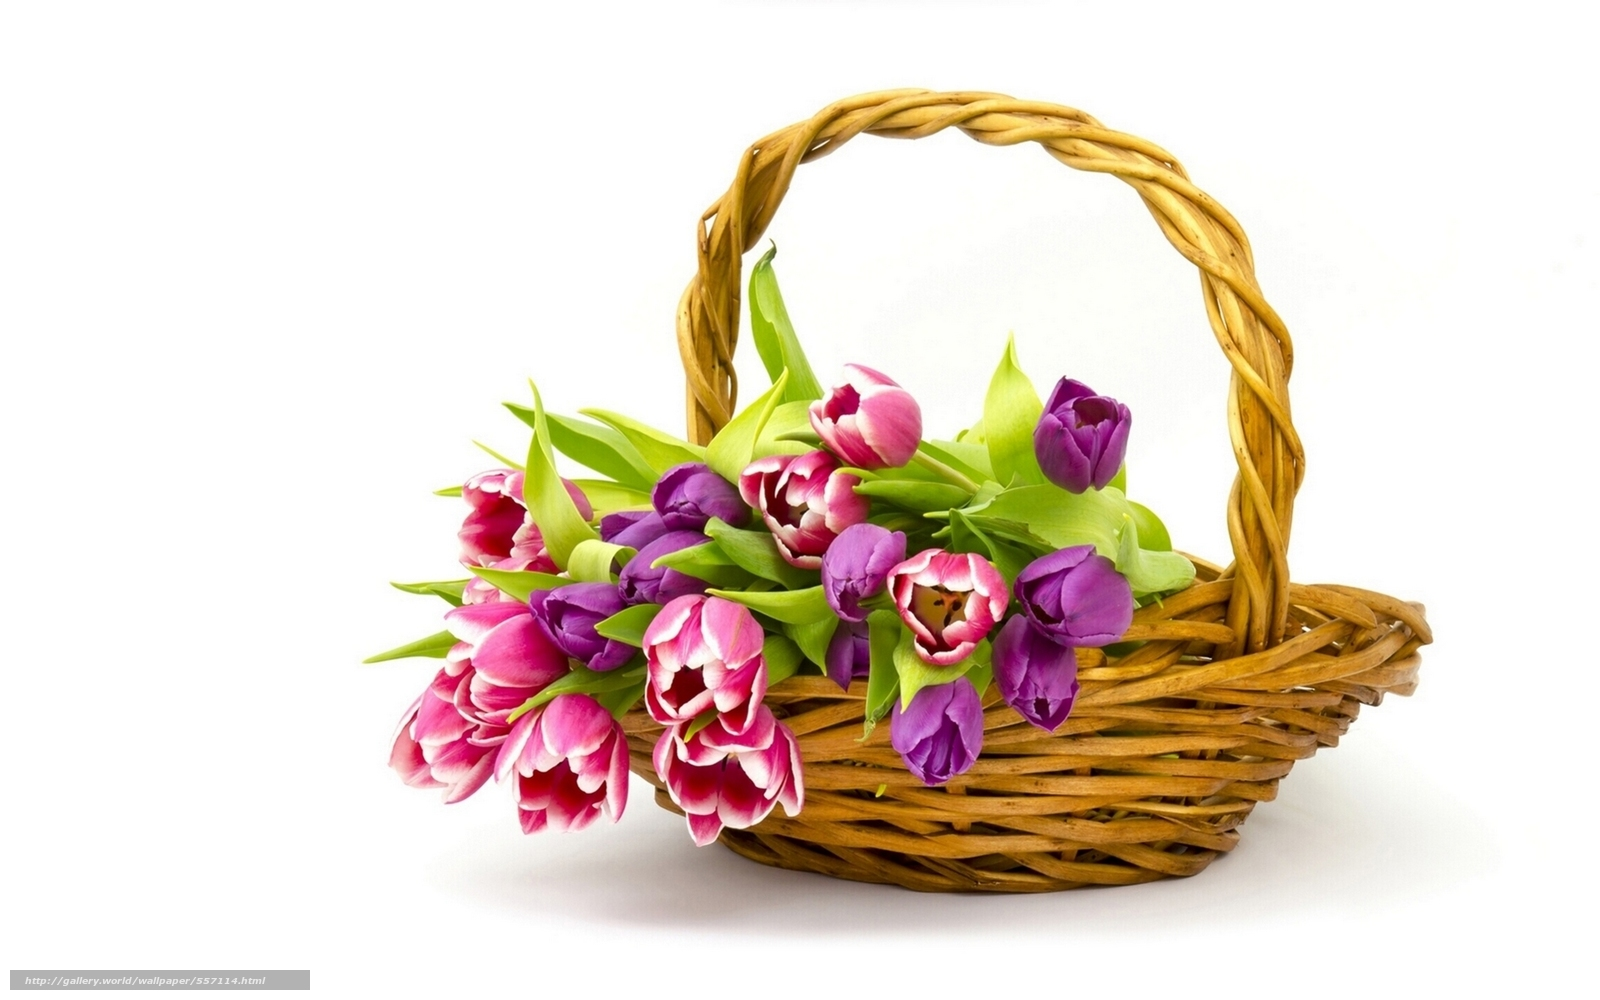 Download Wallpaper Nature Flowers Flower Basket Free Desktop In The Resolution 1920x1200 Picture No557114